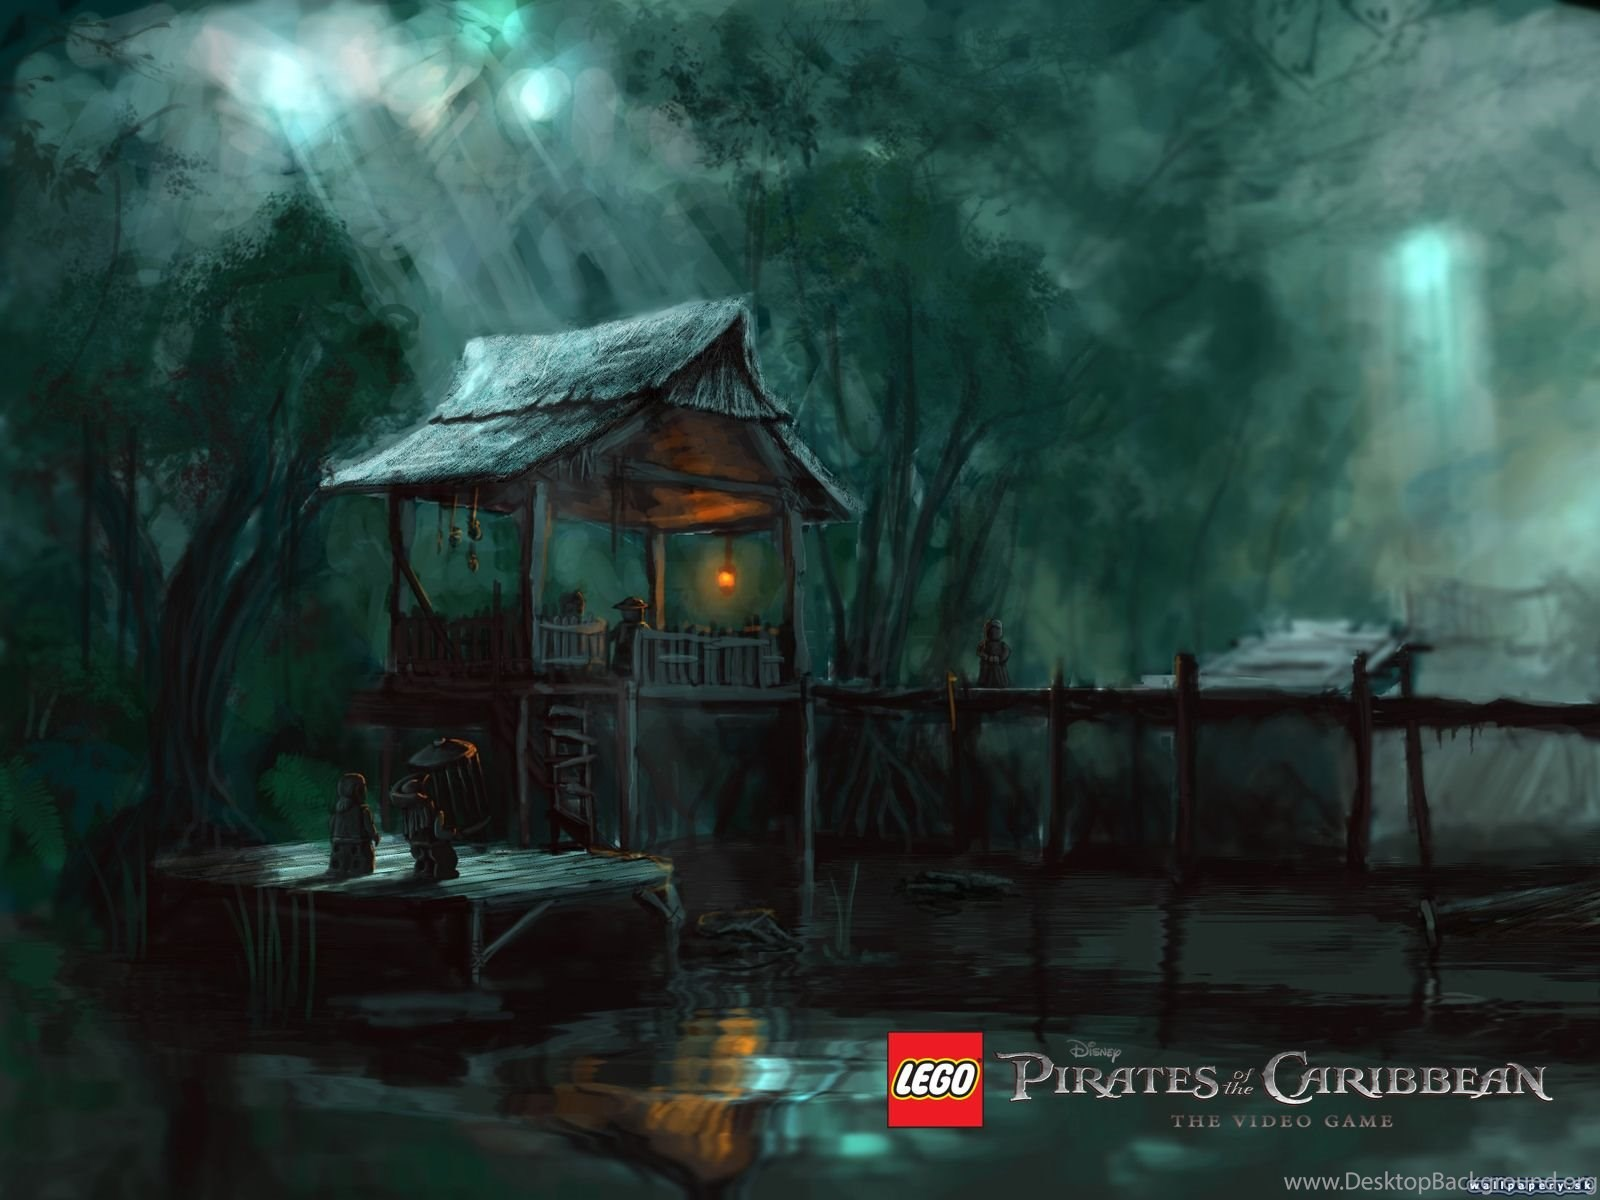 Lego Pirates Of The Caribbean Wallpapers 33786 Desktop Background